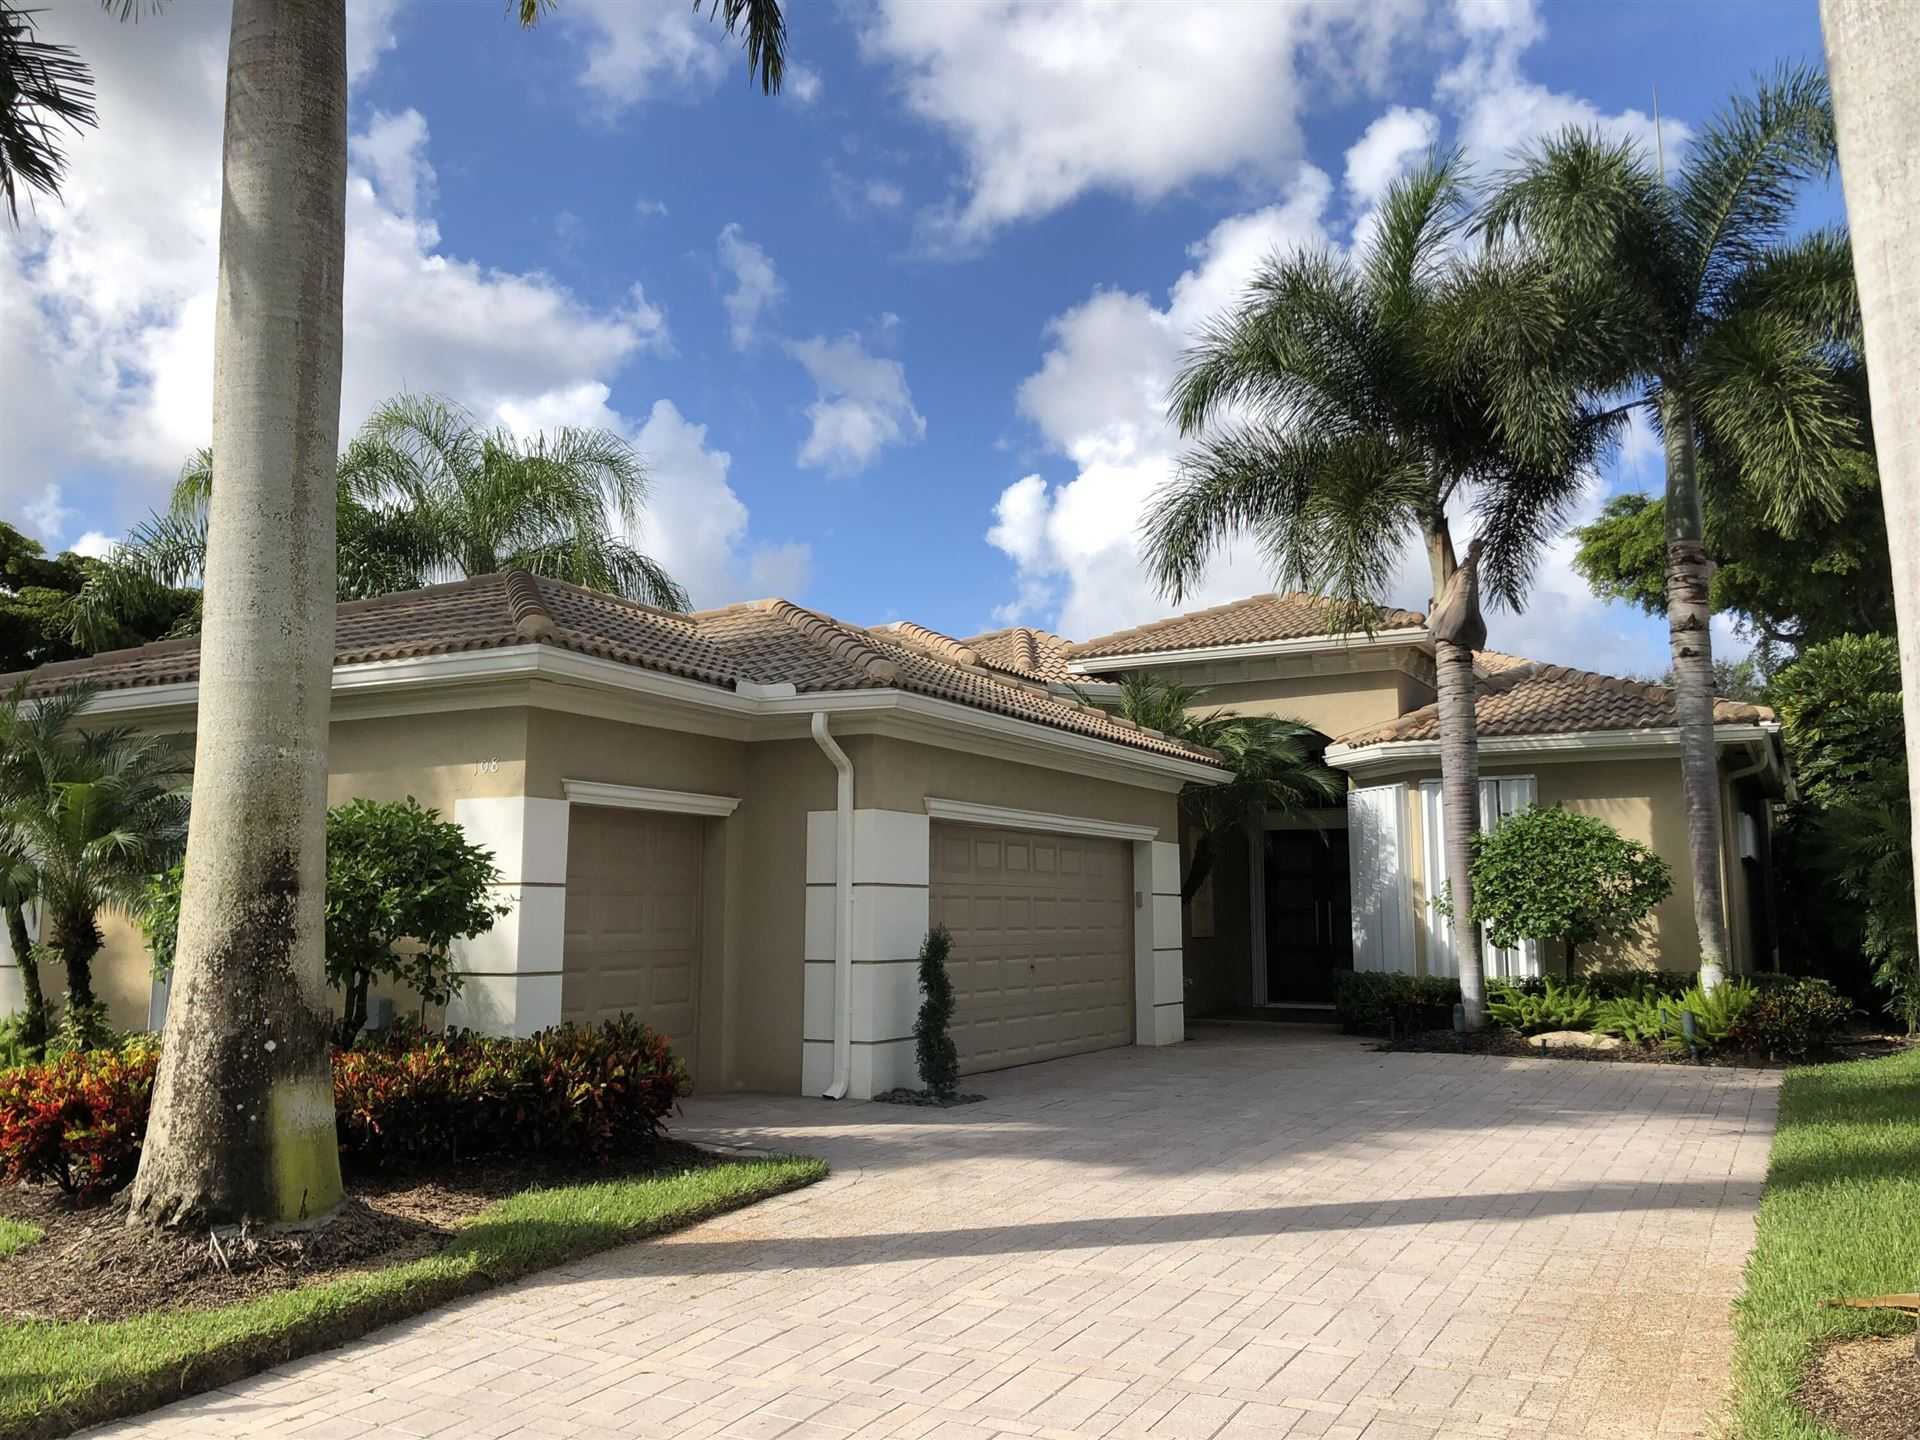 Photo of 108 Orchid Cay Drive, Palm Beach Gardens, FL 33418 (MLS # RX-10749968)